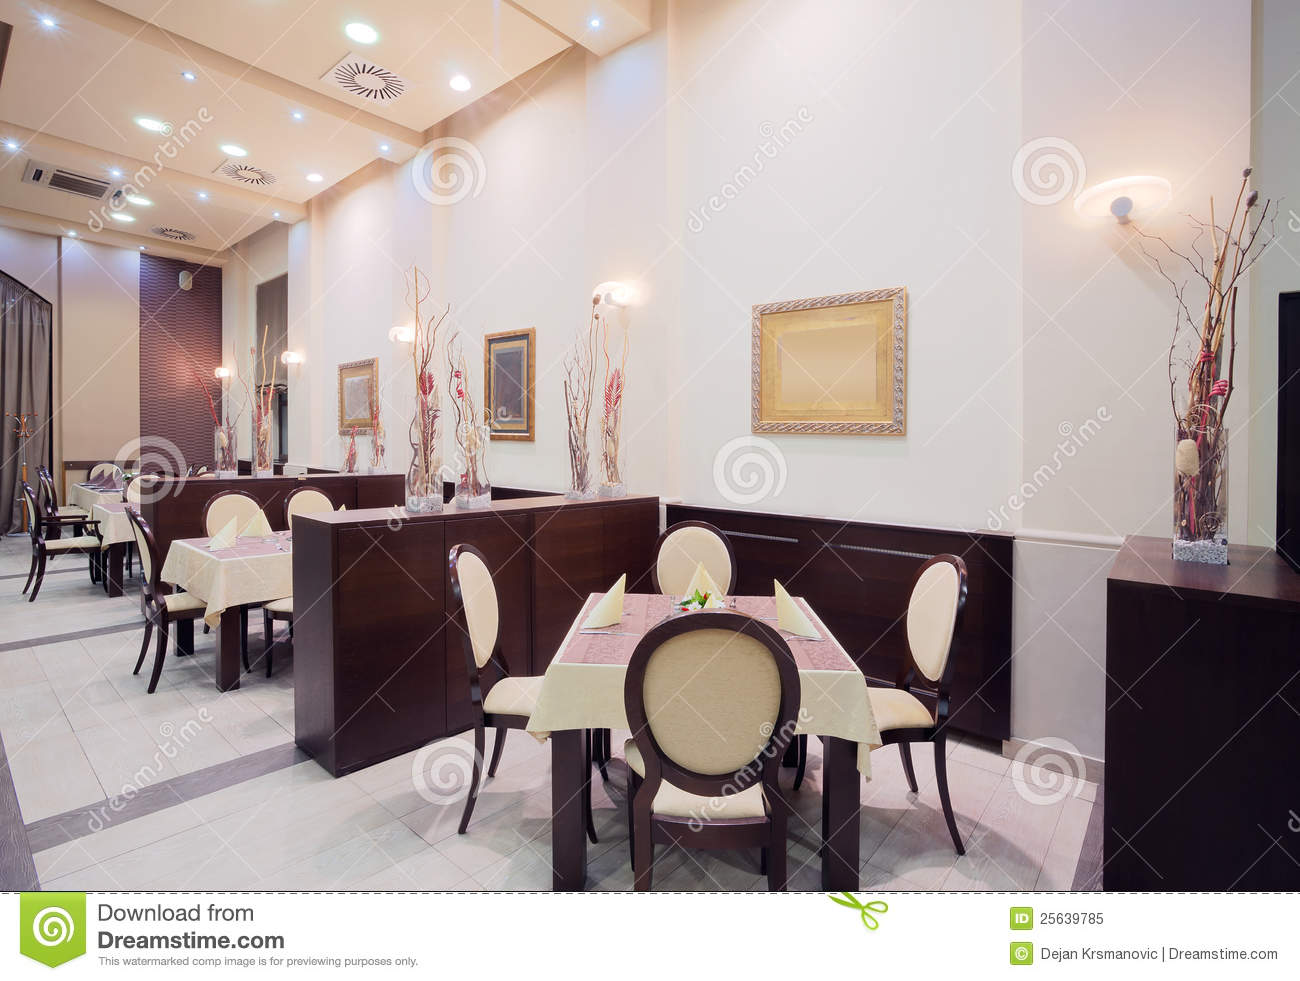 modern hotel restaurant interior royalty free stock images - image